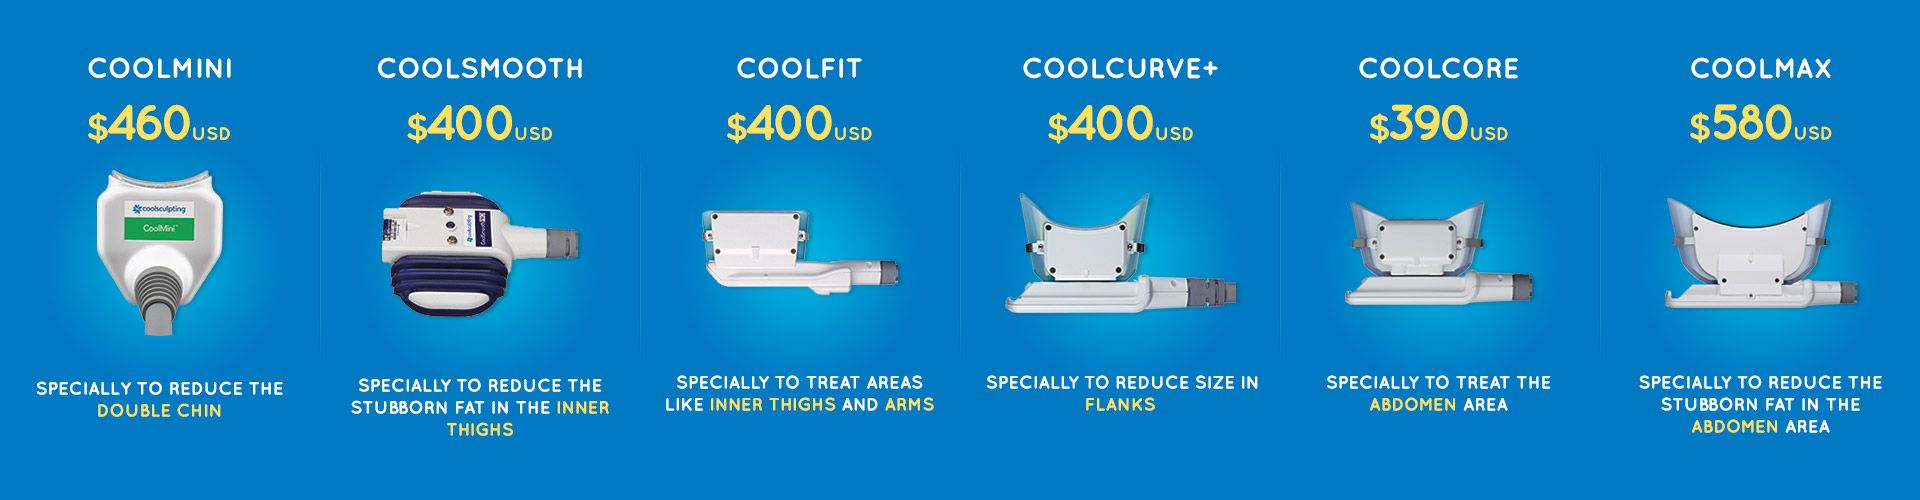 CoolSculpting Prices, Results, Treatments Areas